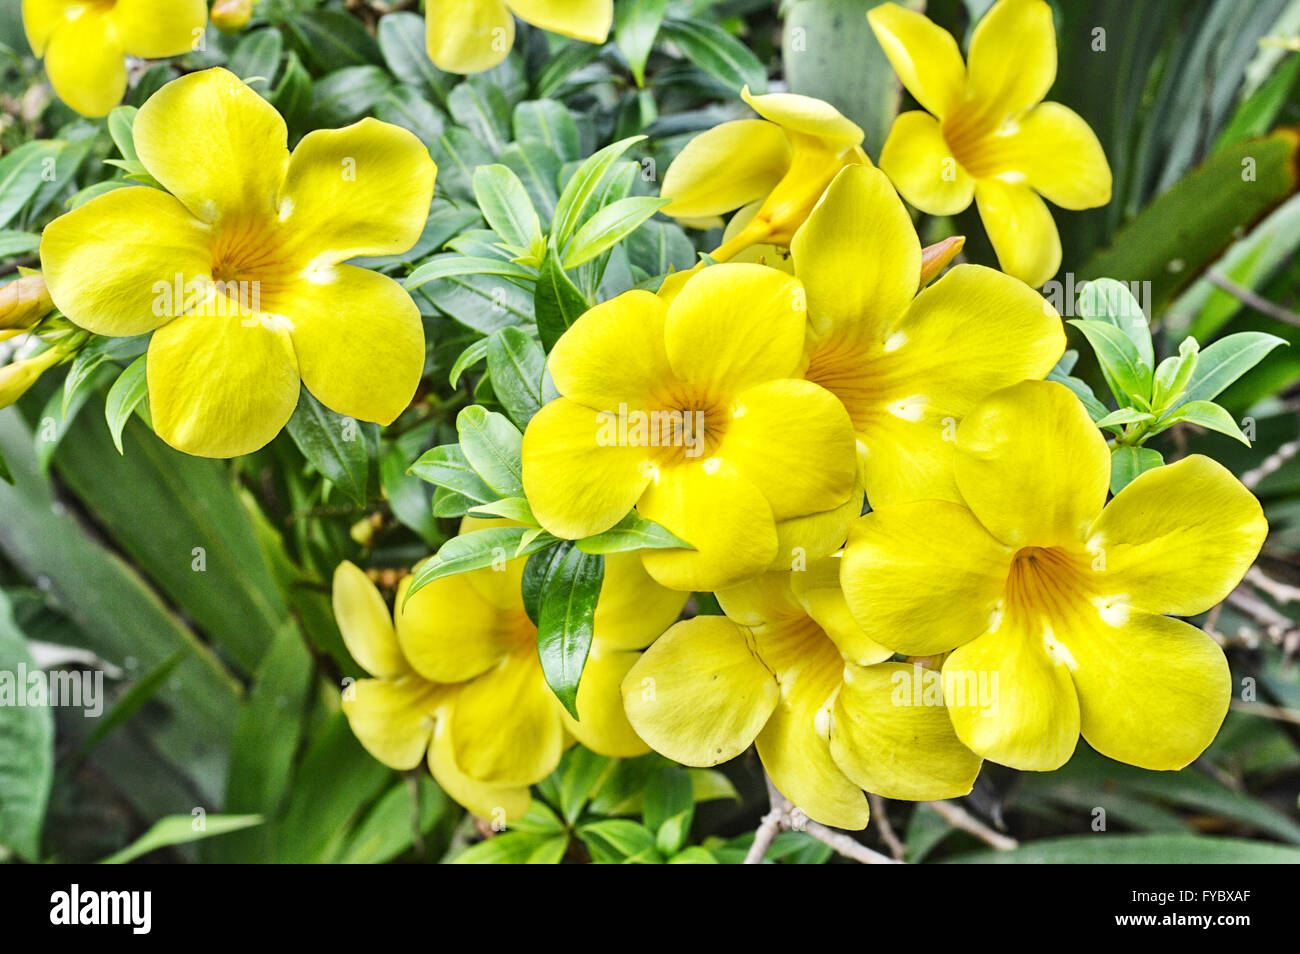 Yellow trumpet flower tree in nature stock photo 102909703 alamy yellow trumpet flower tree in nature mightylinksfo